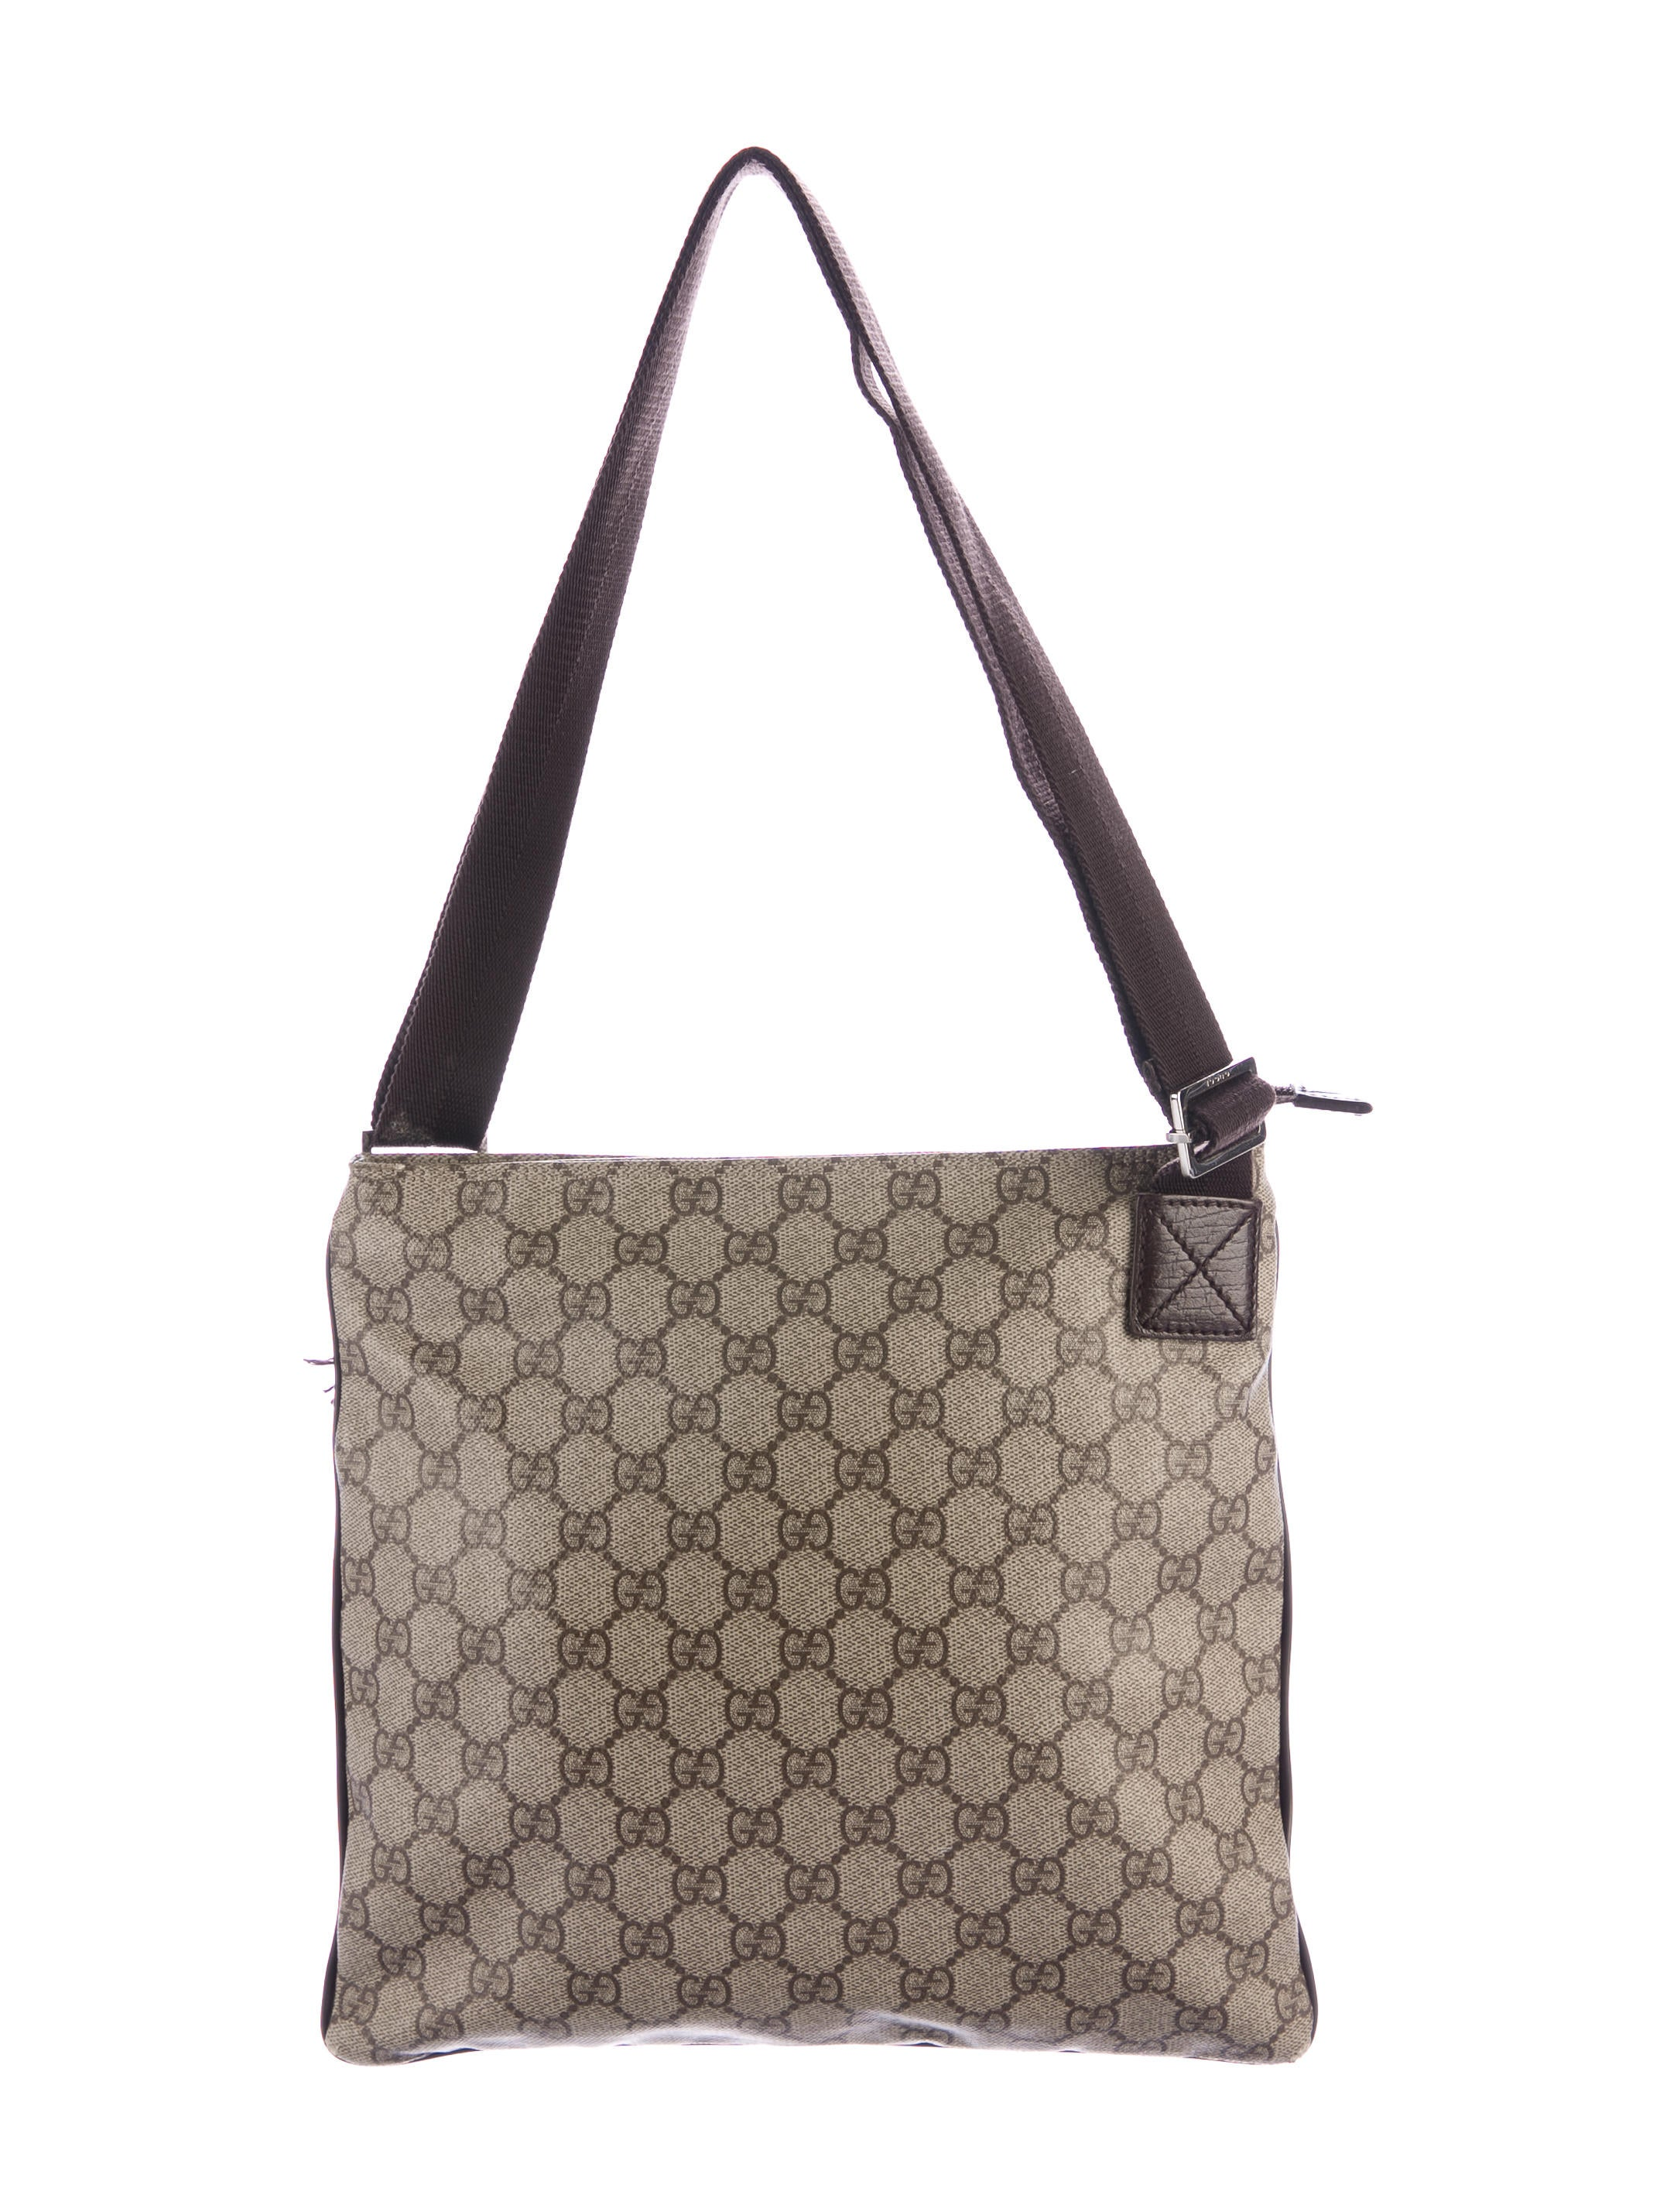 10fc5ec74399 Gucci Small Messenger Bag Price | Stanford Center for Opportunity ...